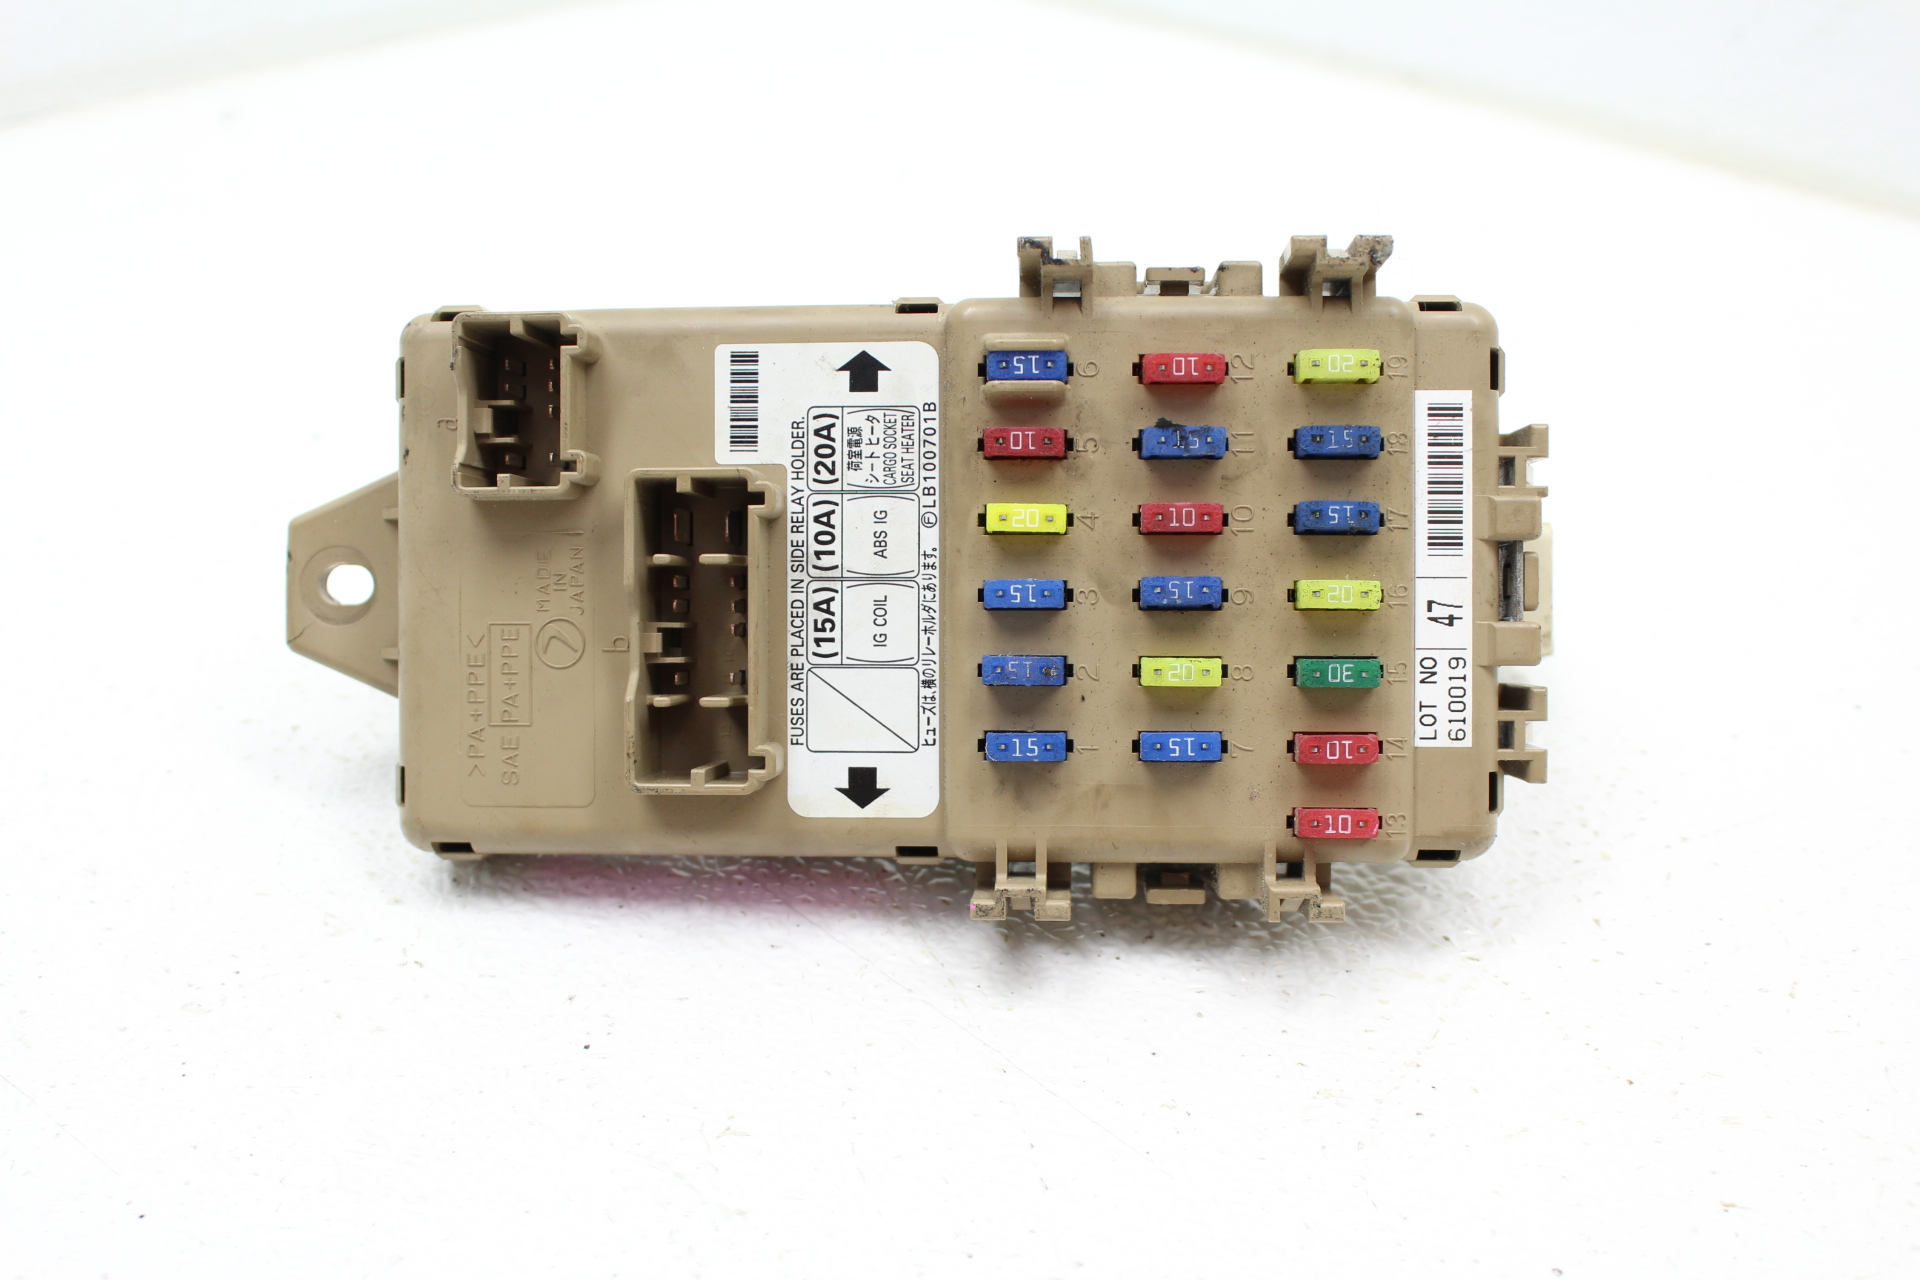 [DIAGRAM_5NL]  2006-2007 SUBARU IMPREZA WRX STI FUSE BOX JUNCTION PANEL OEM –  SubieAutoParts.com | 2007 Subaru Wrx Fuse Box |  | SubieAutoParts.com